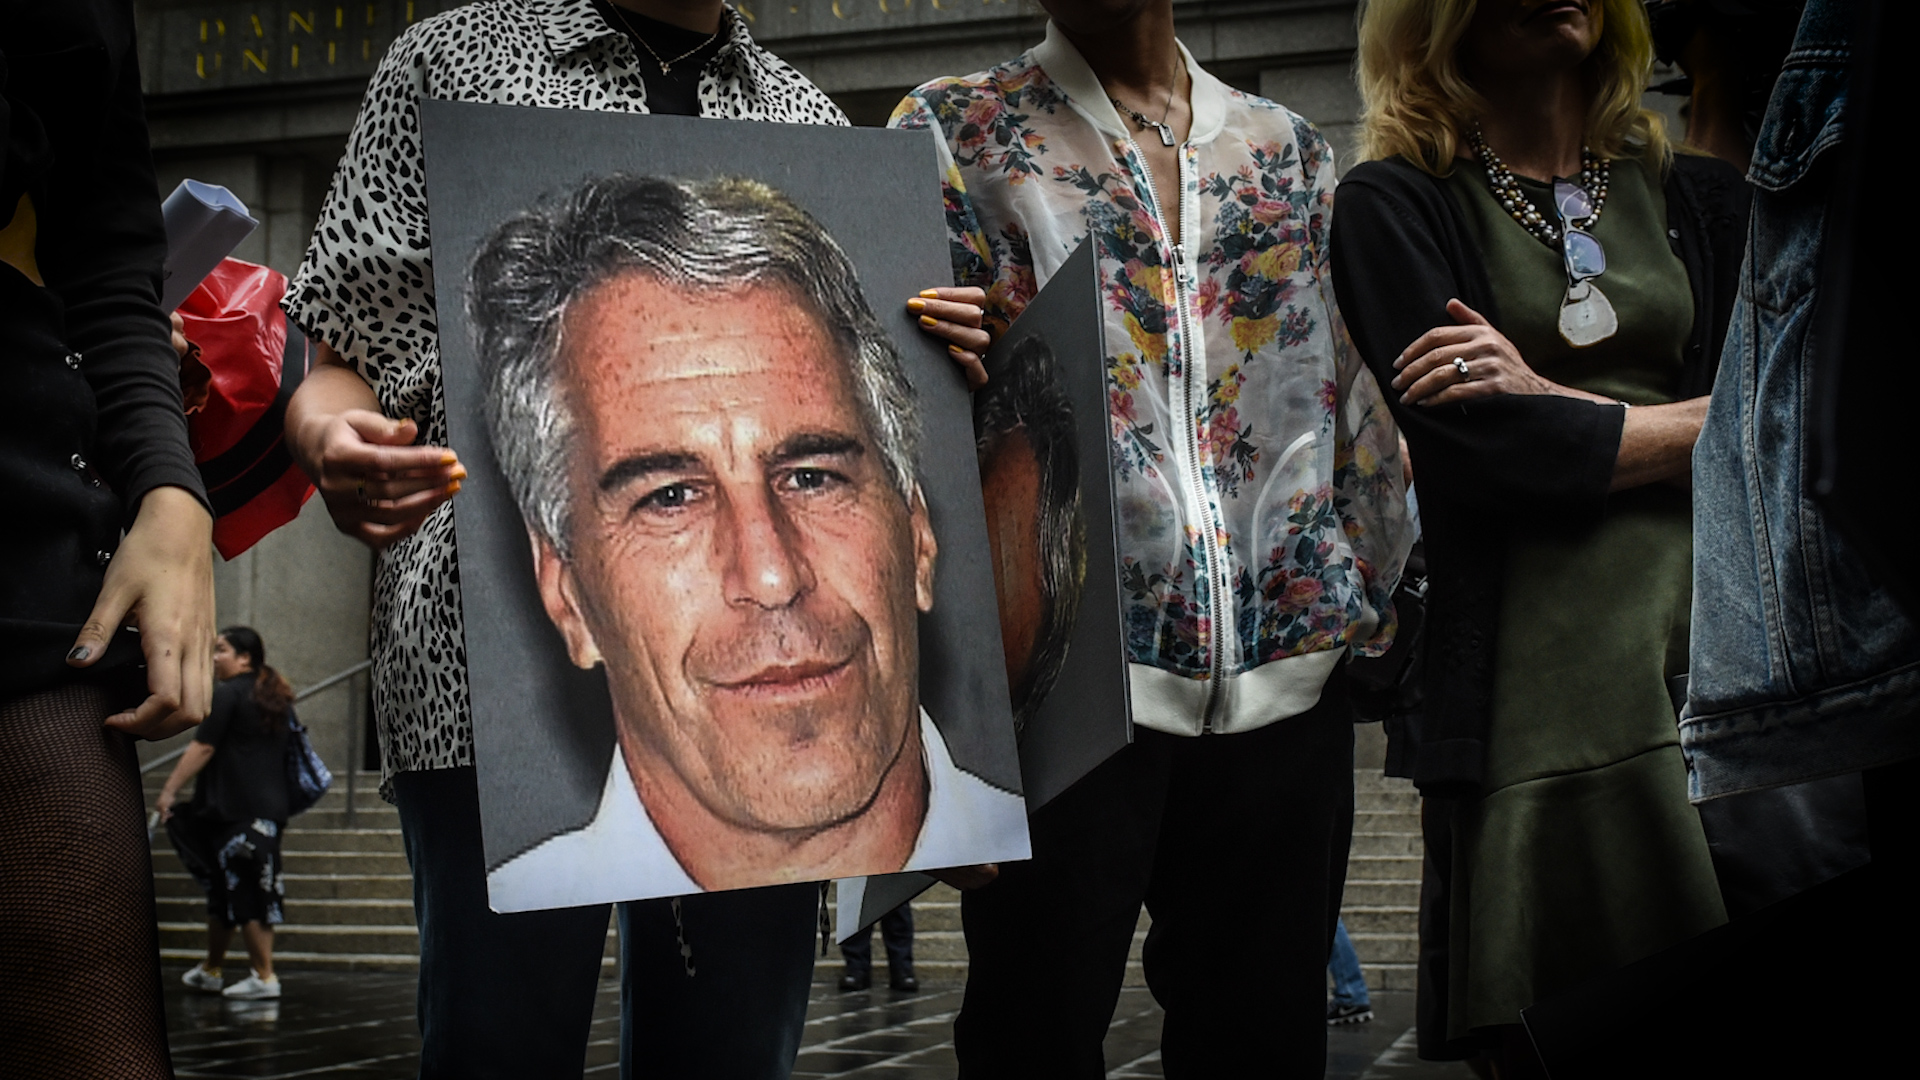 Prince Andrew S Connection To Jeffrey Epstein Under New Scrutiny